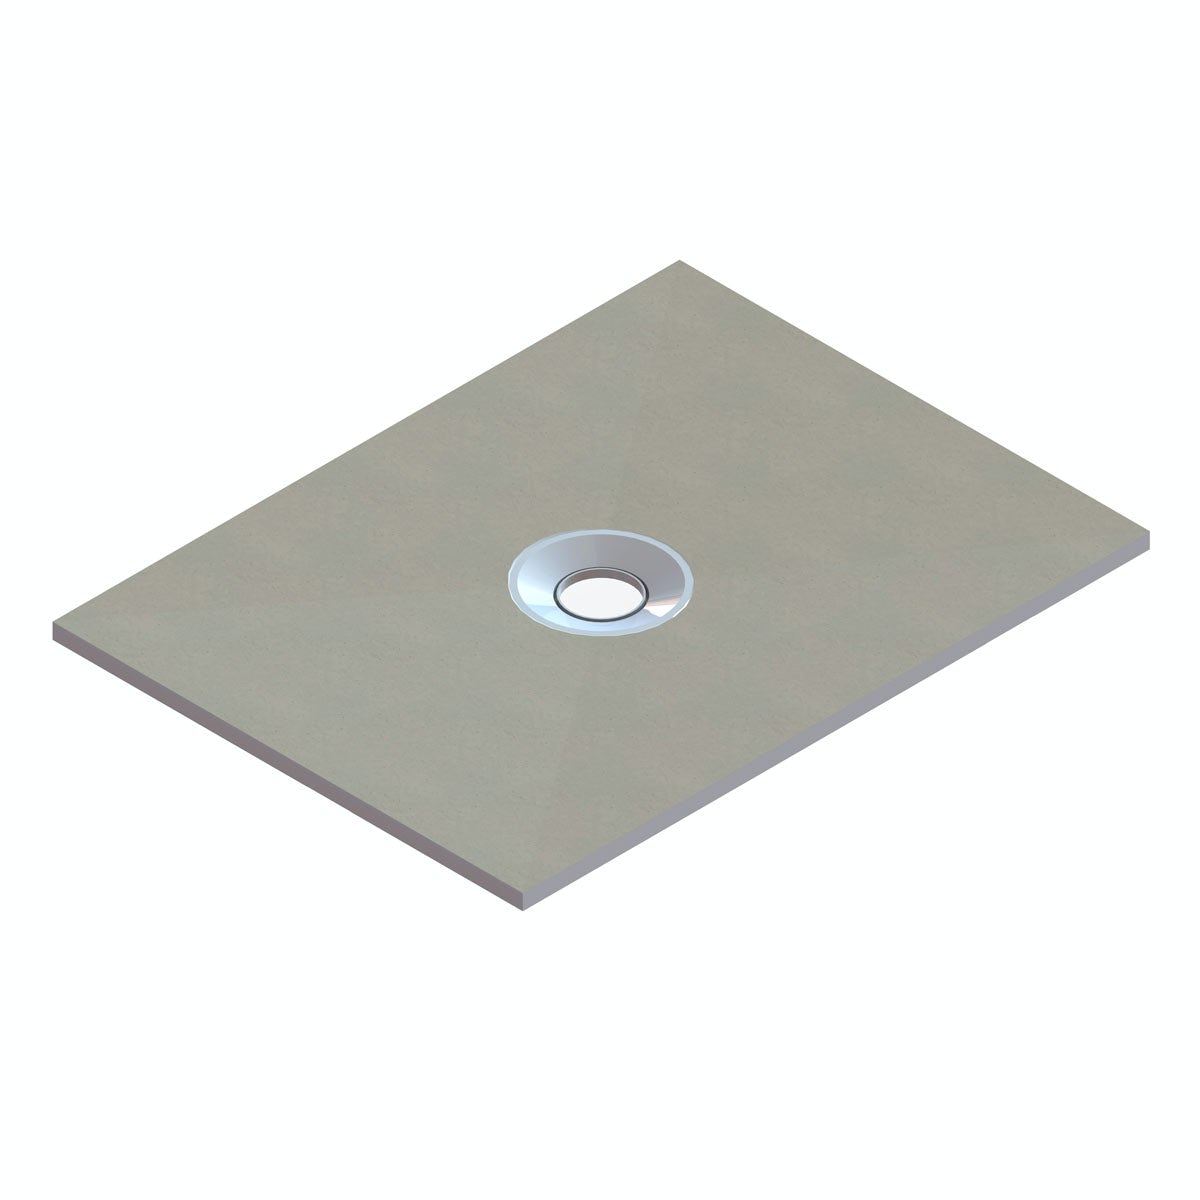 Orchard wet room tray centre waste 1200 x 900